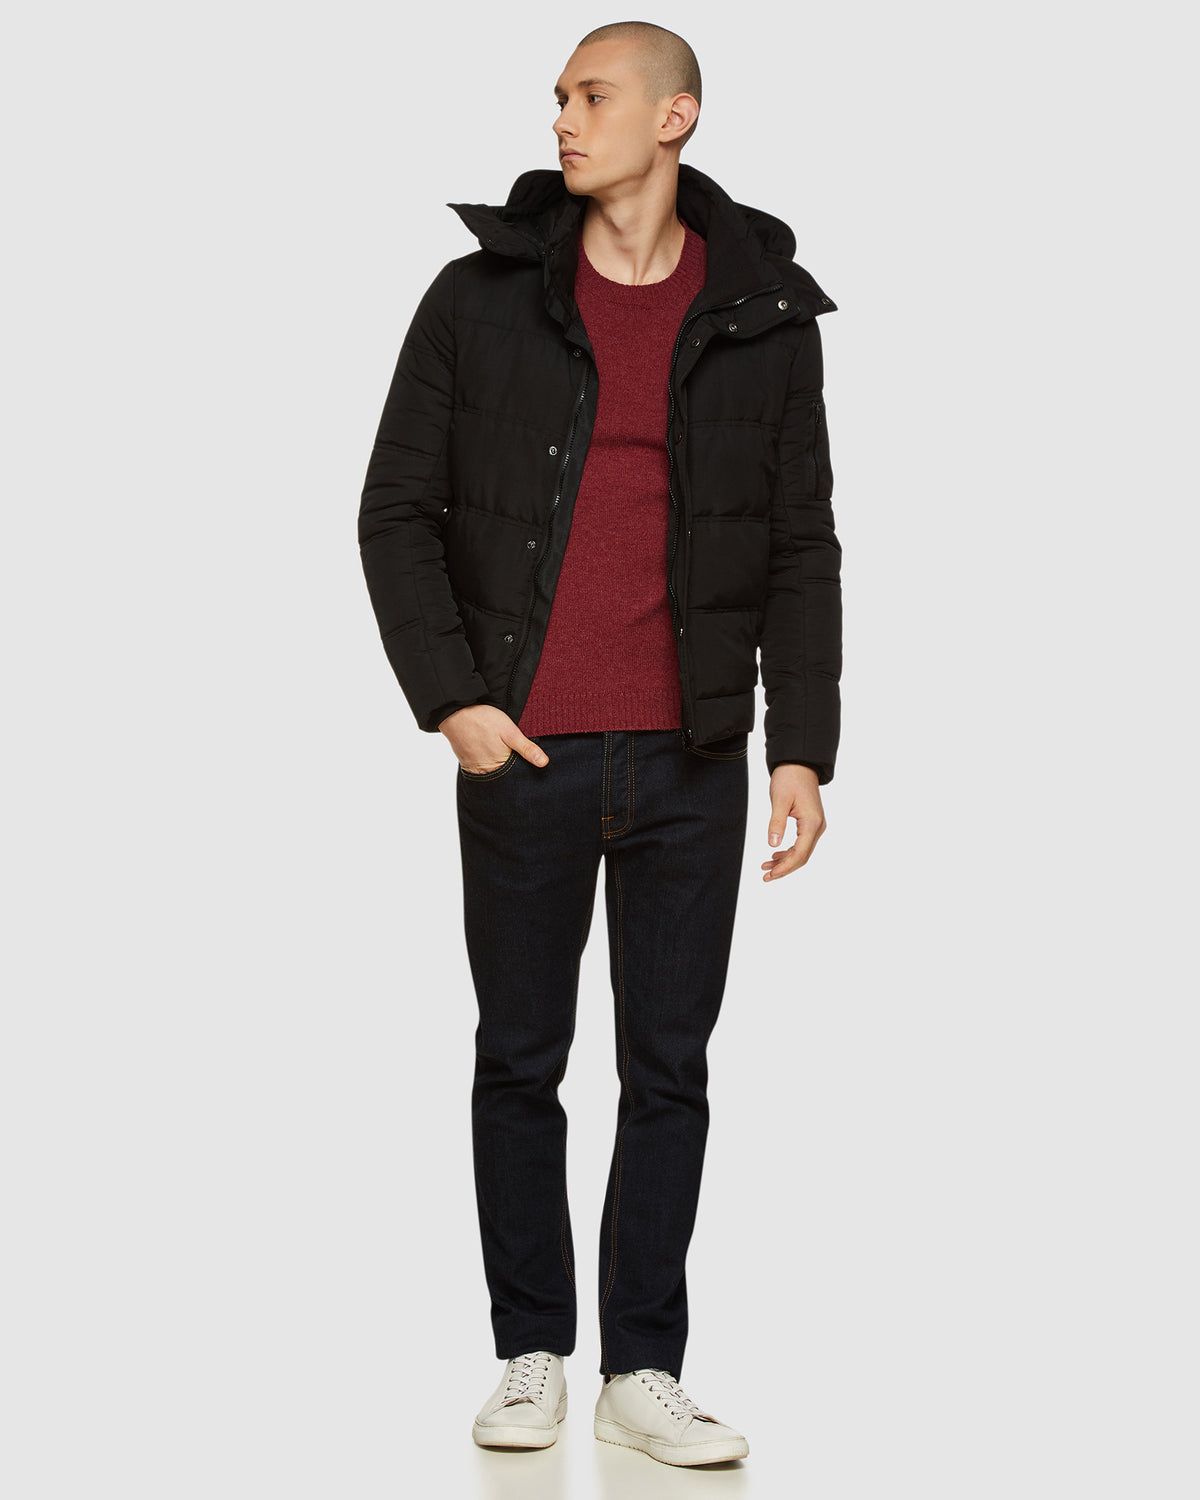 AIDEN HOODY PUFFA JACKET BLACK